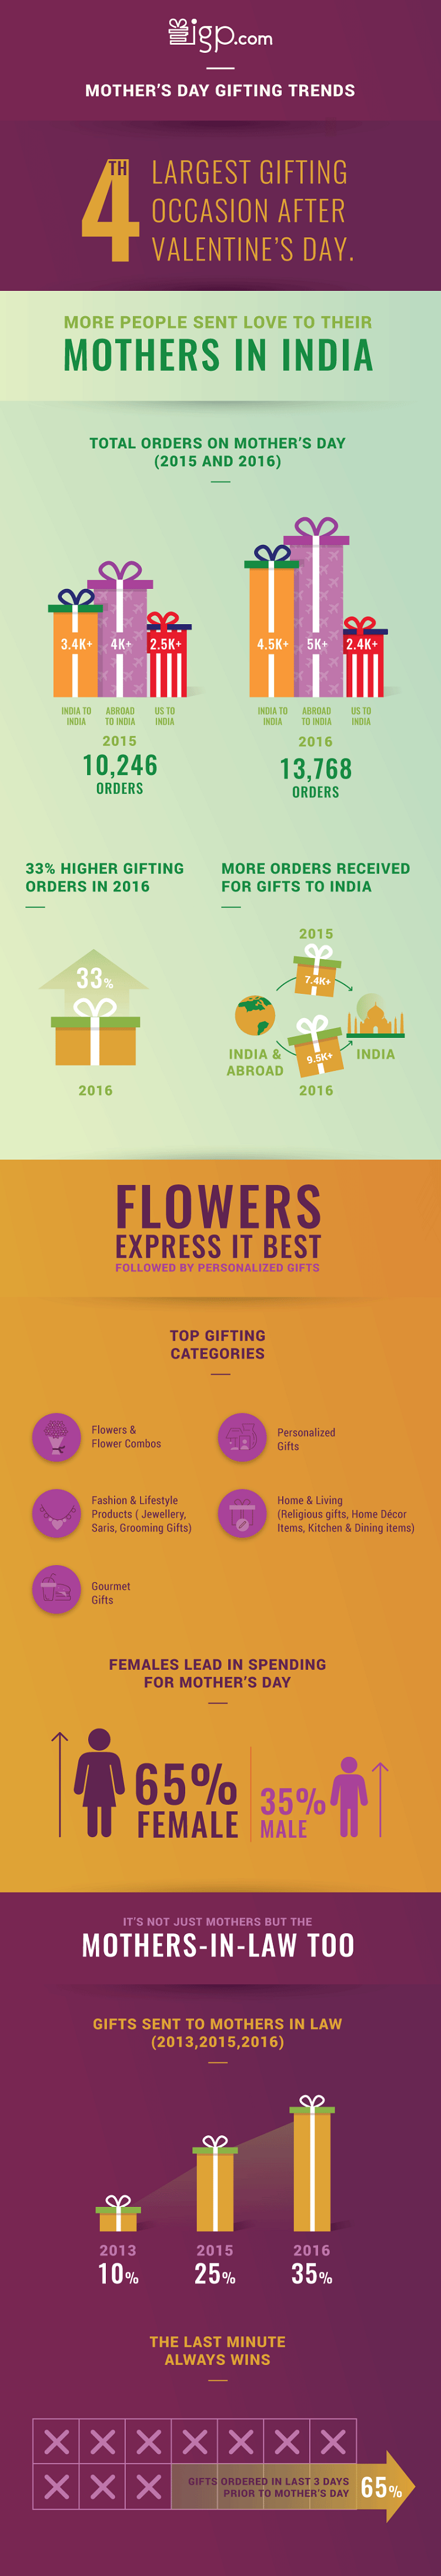 <b>Mother's Day Gifting Trends</b>